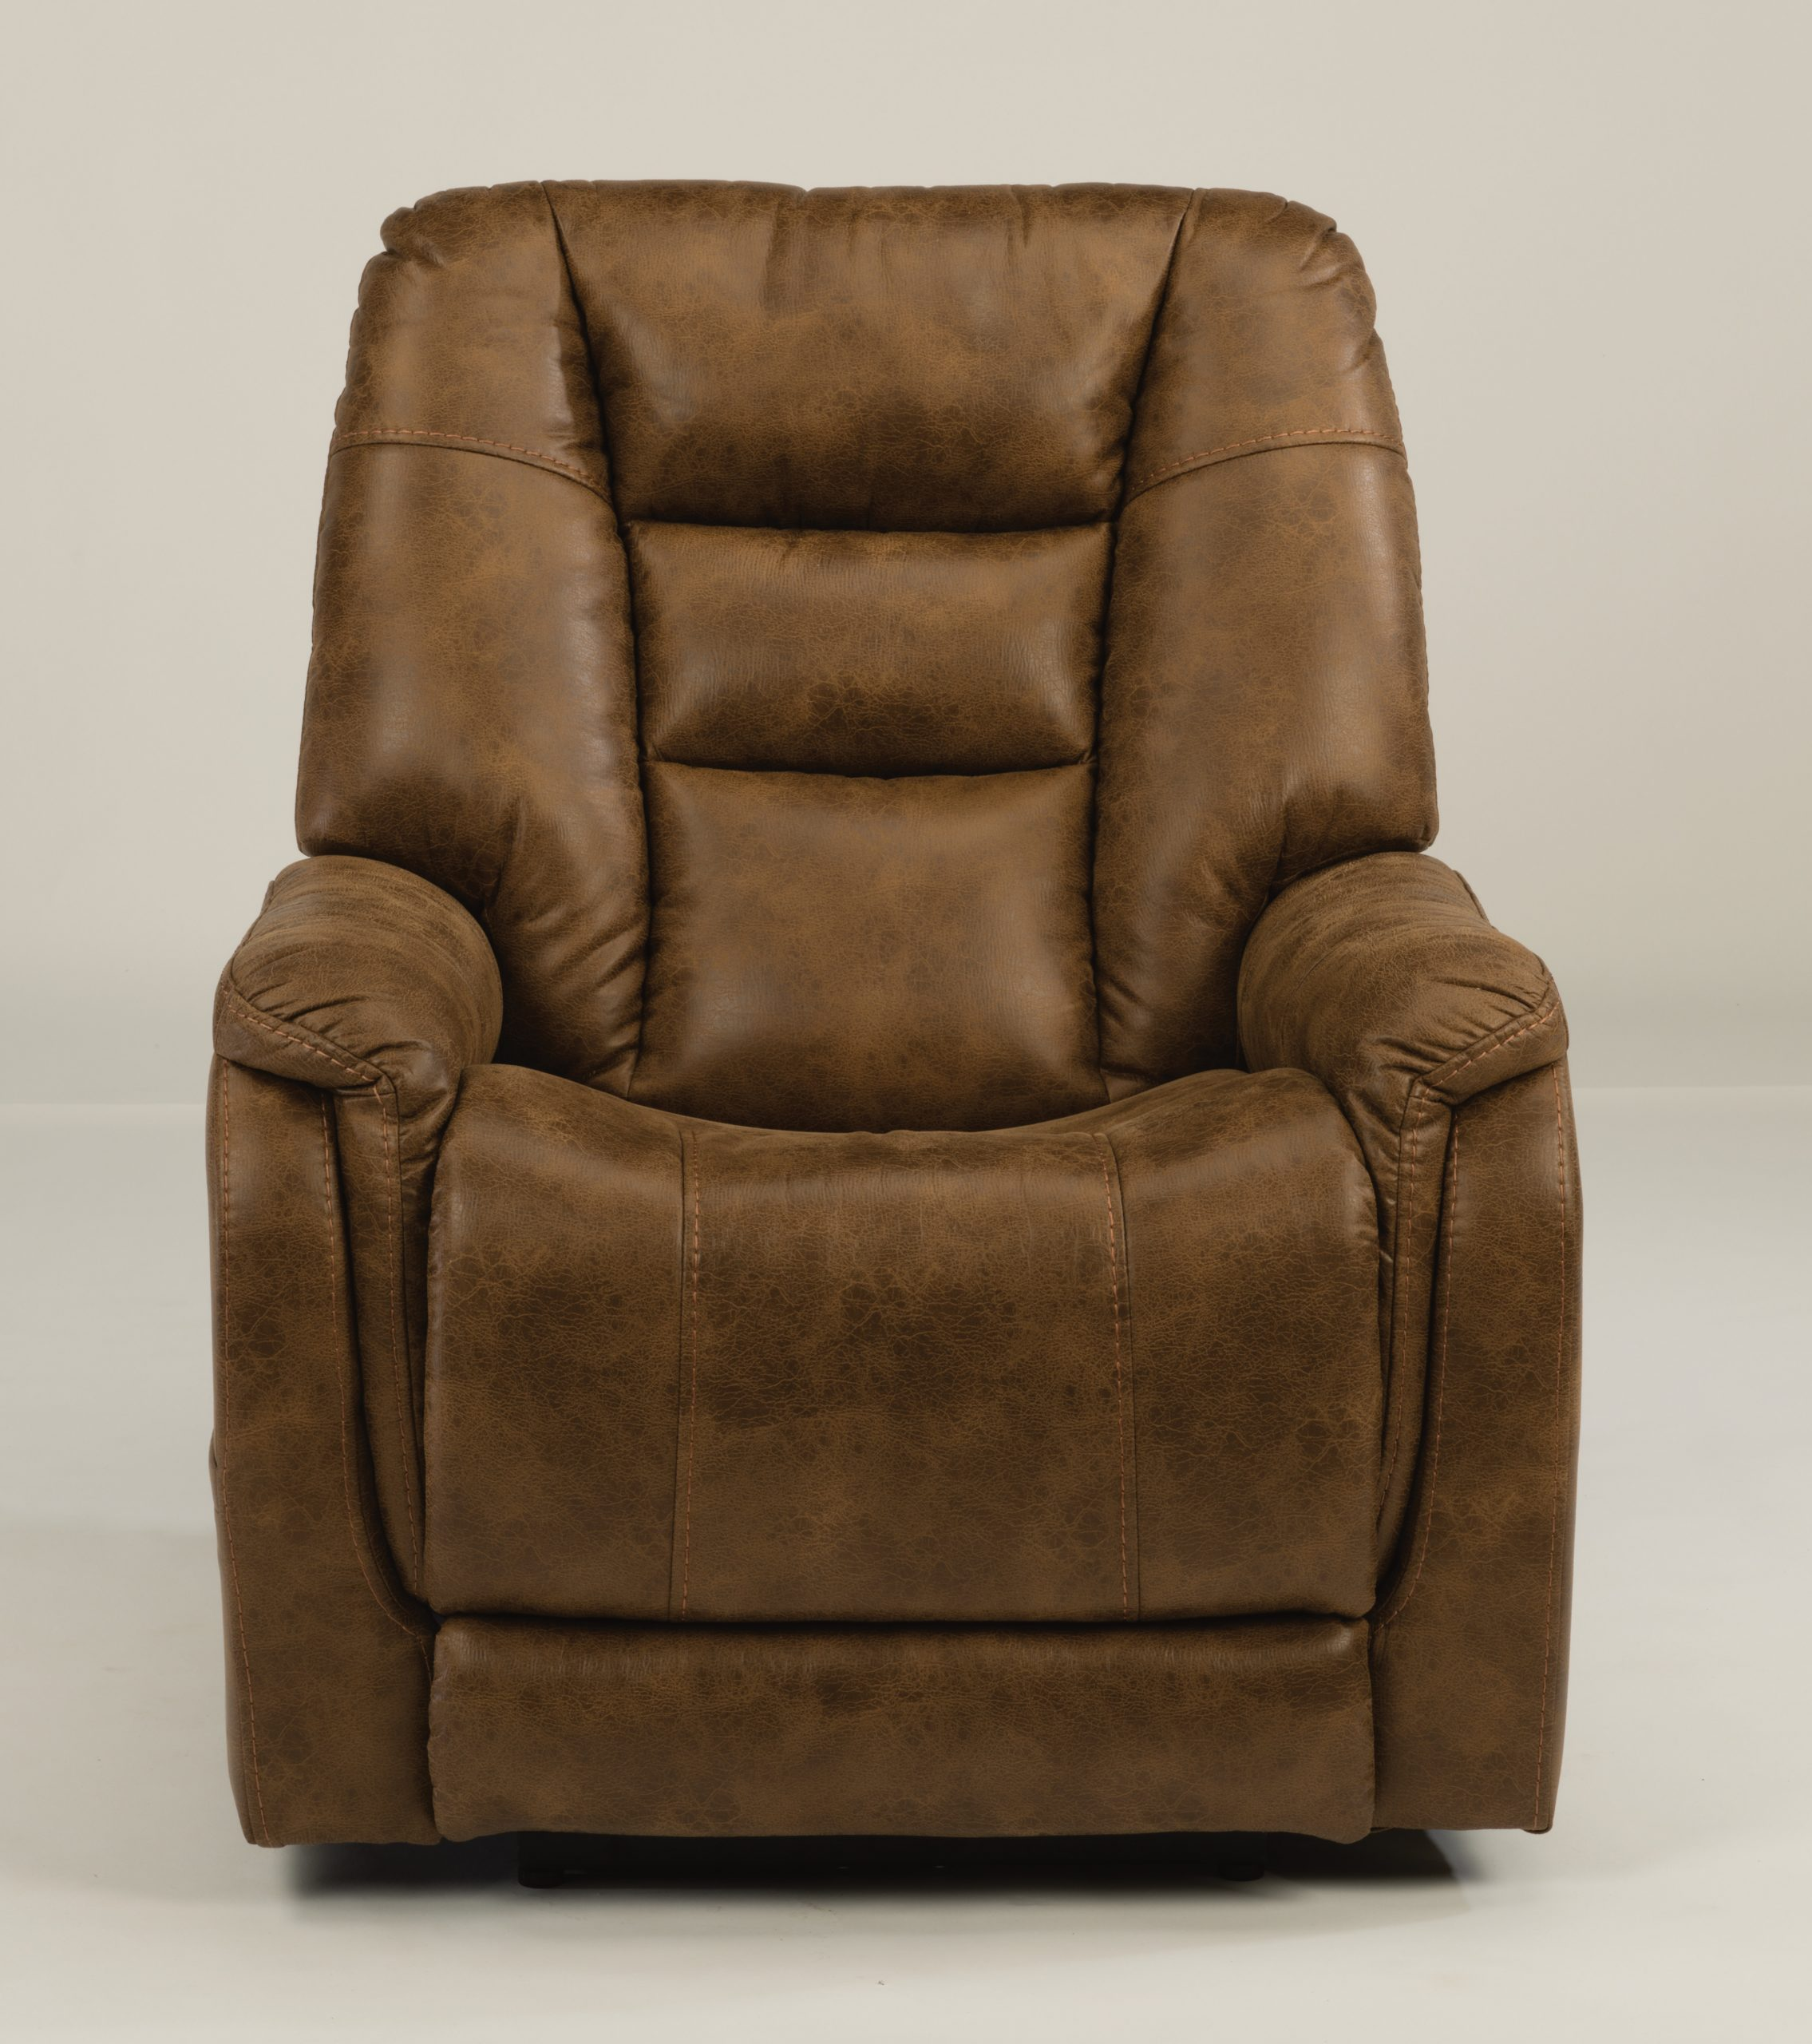 Flexsteel Theo Big and Tall Power Recliner with Headrest and Lumbar (Recliners)